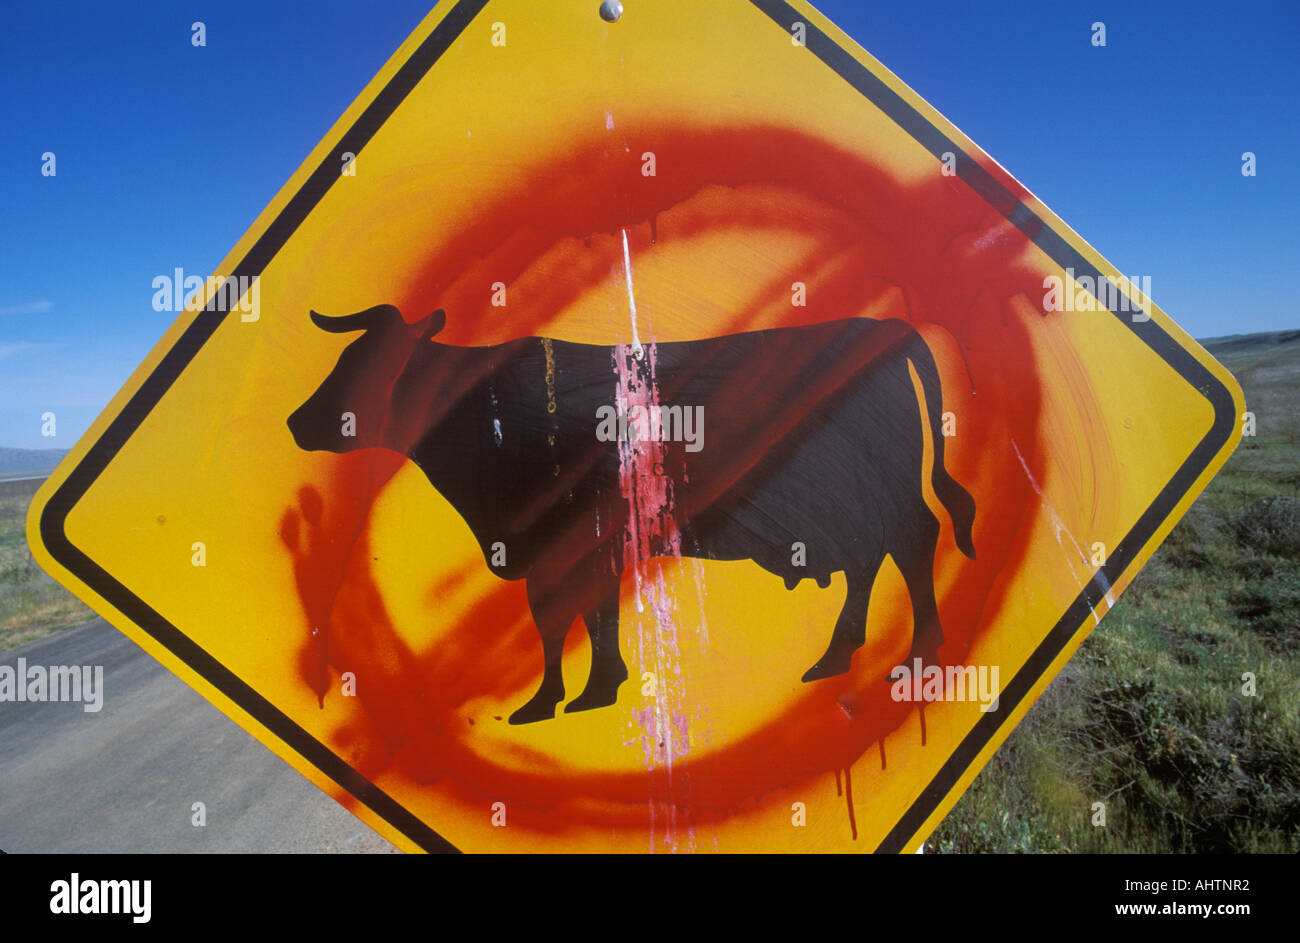 A defaced roadside sign - Stock Image